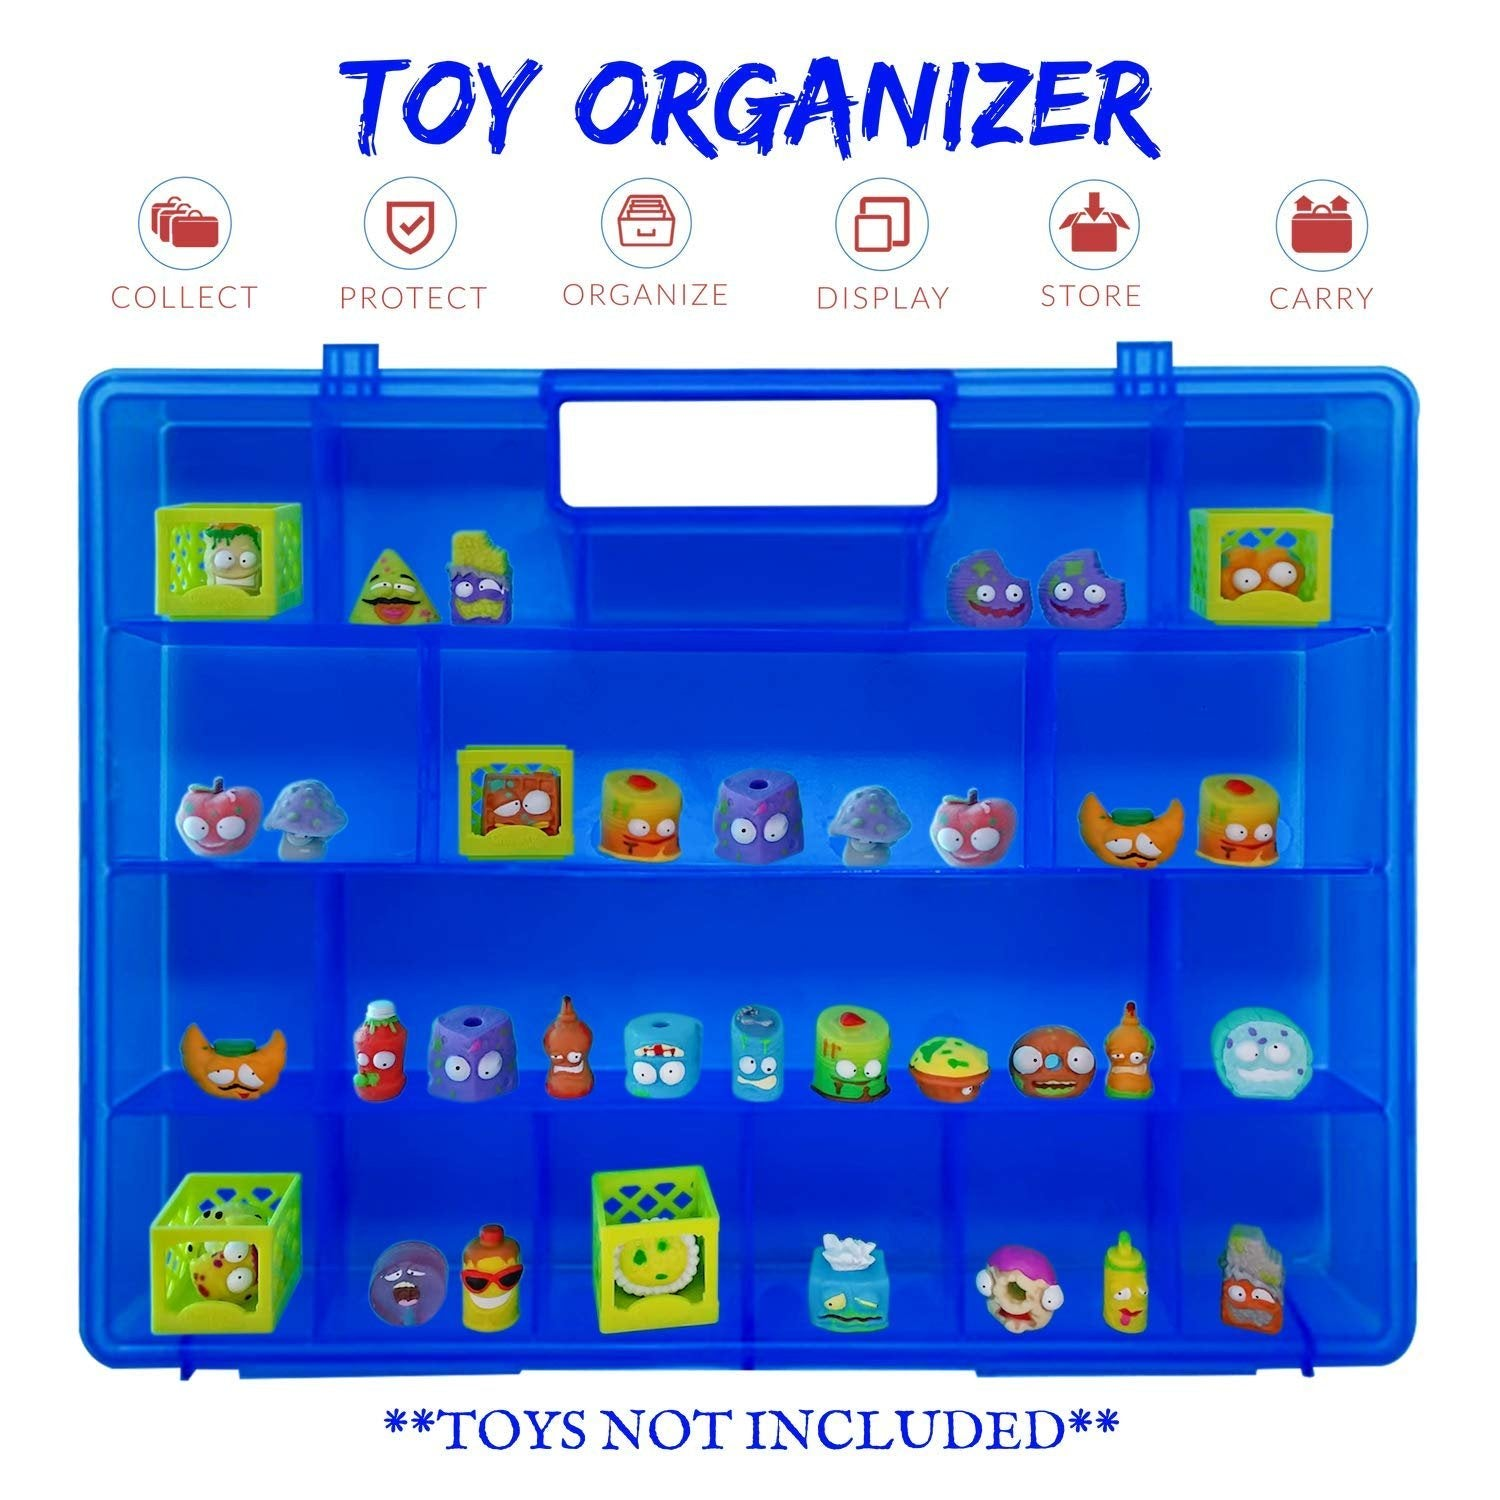 Life Made Better, Kid Blue Playset Toy Organizer with New Strengthened Handle, Compatible with Grossery Gang Figures, Toy Figures Case by LMB